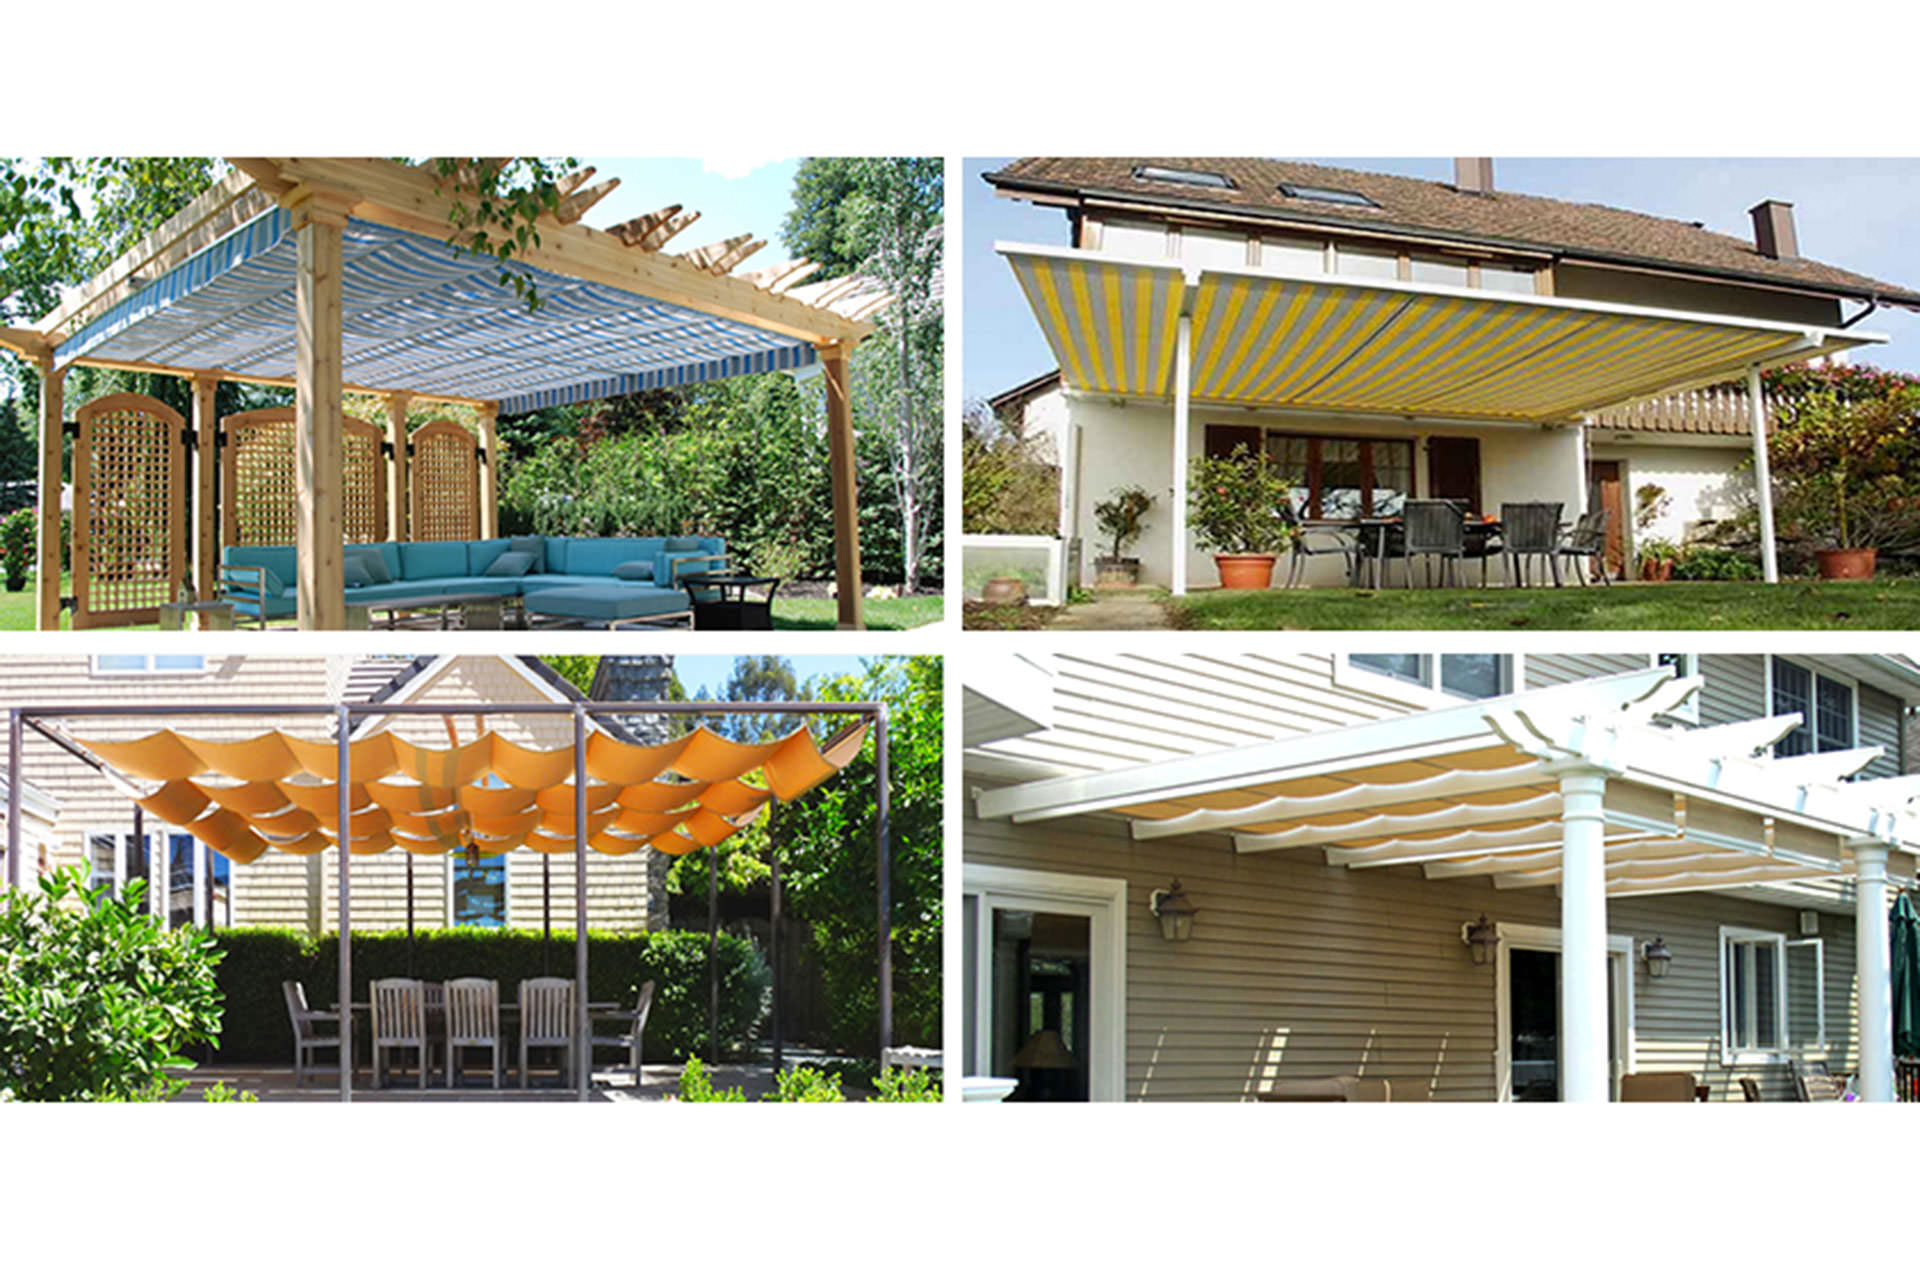 choosing a retractable canopy track: single, multi, cable, or roll?